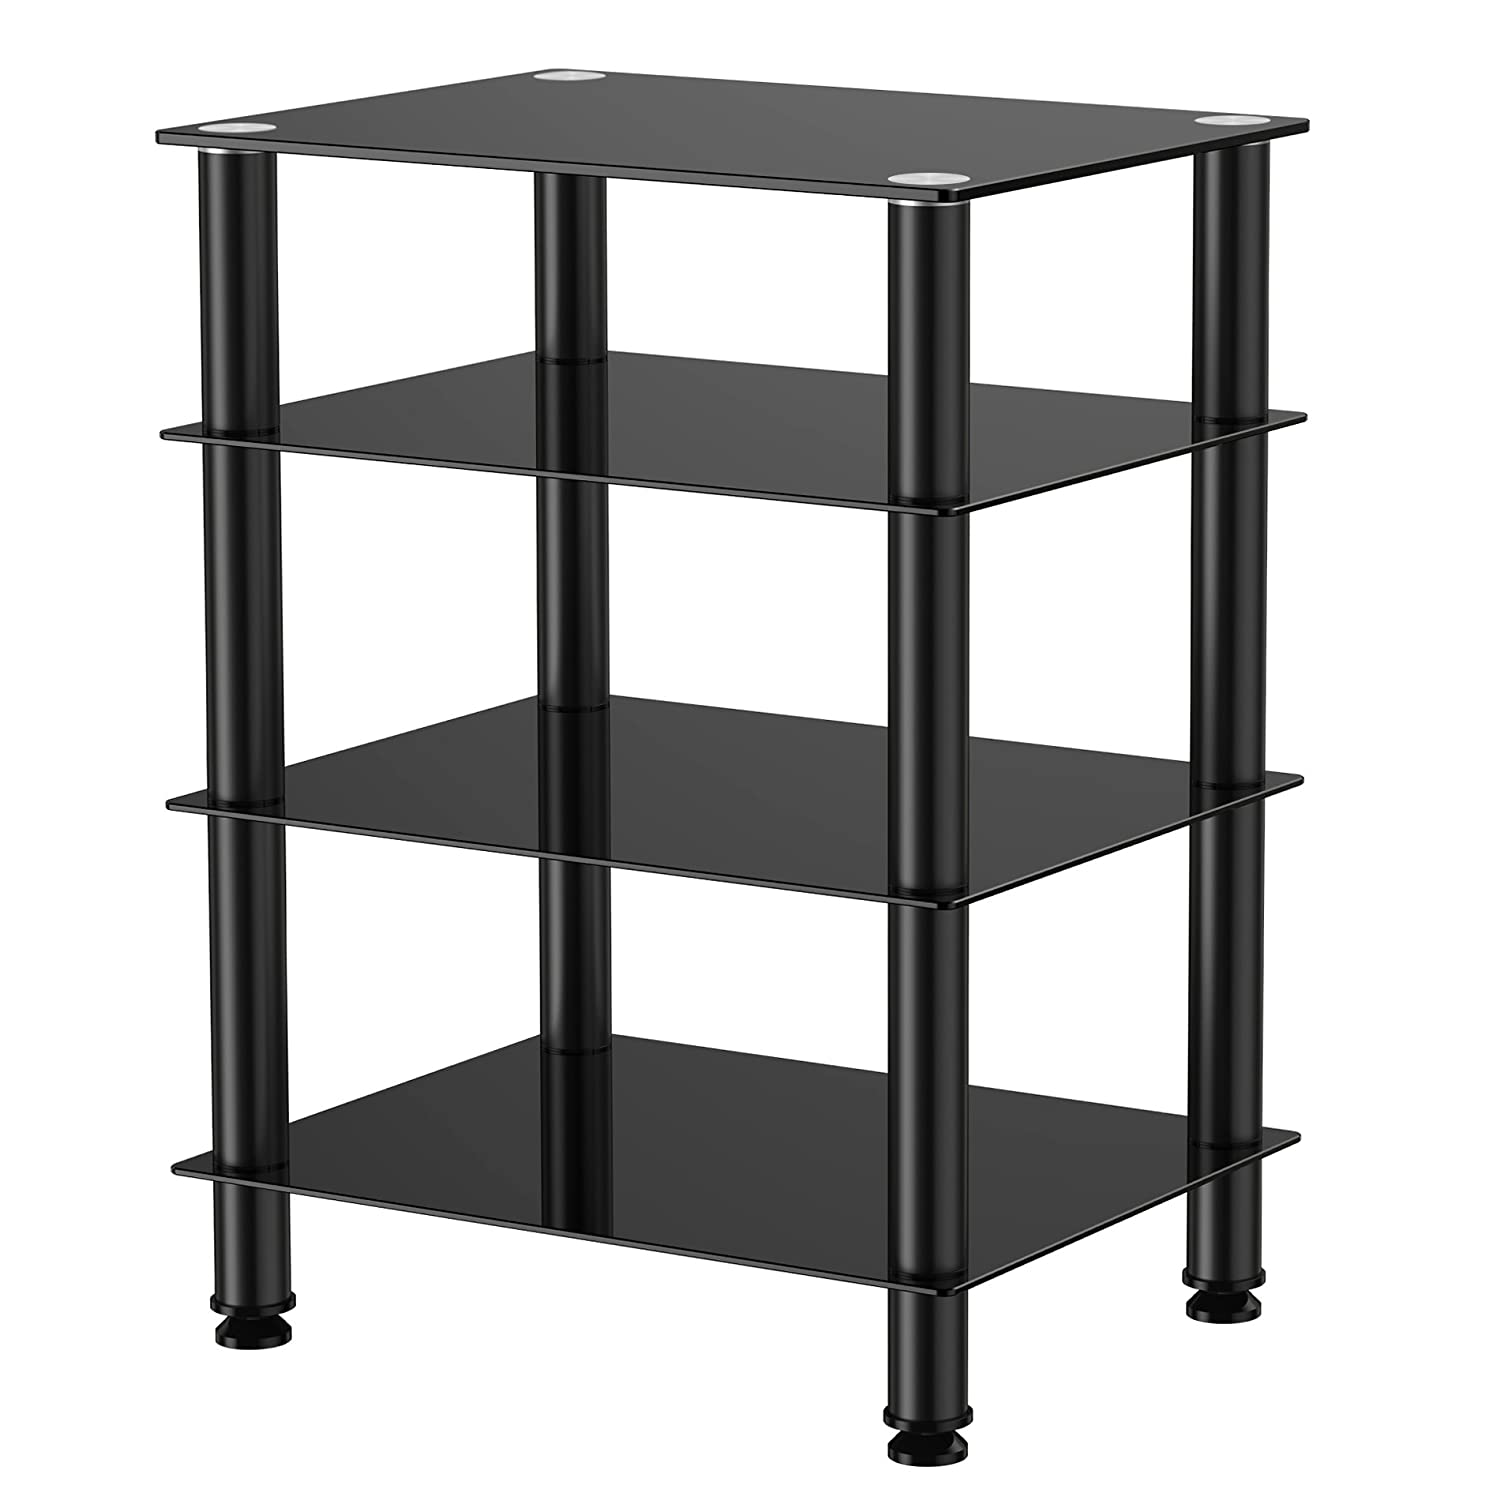 Fitueyes 4-tier Media Stand Audio Video Component Cabinet with Glass Shelf for Apple Tv xbox One ps4 AS406001GB